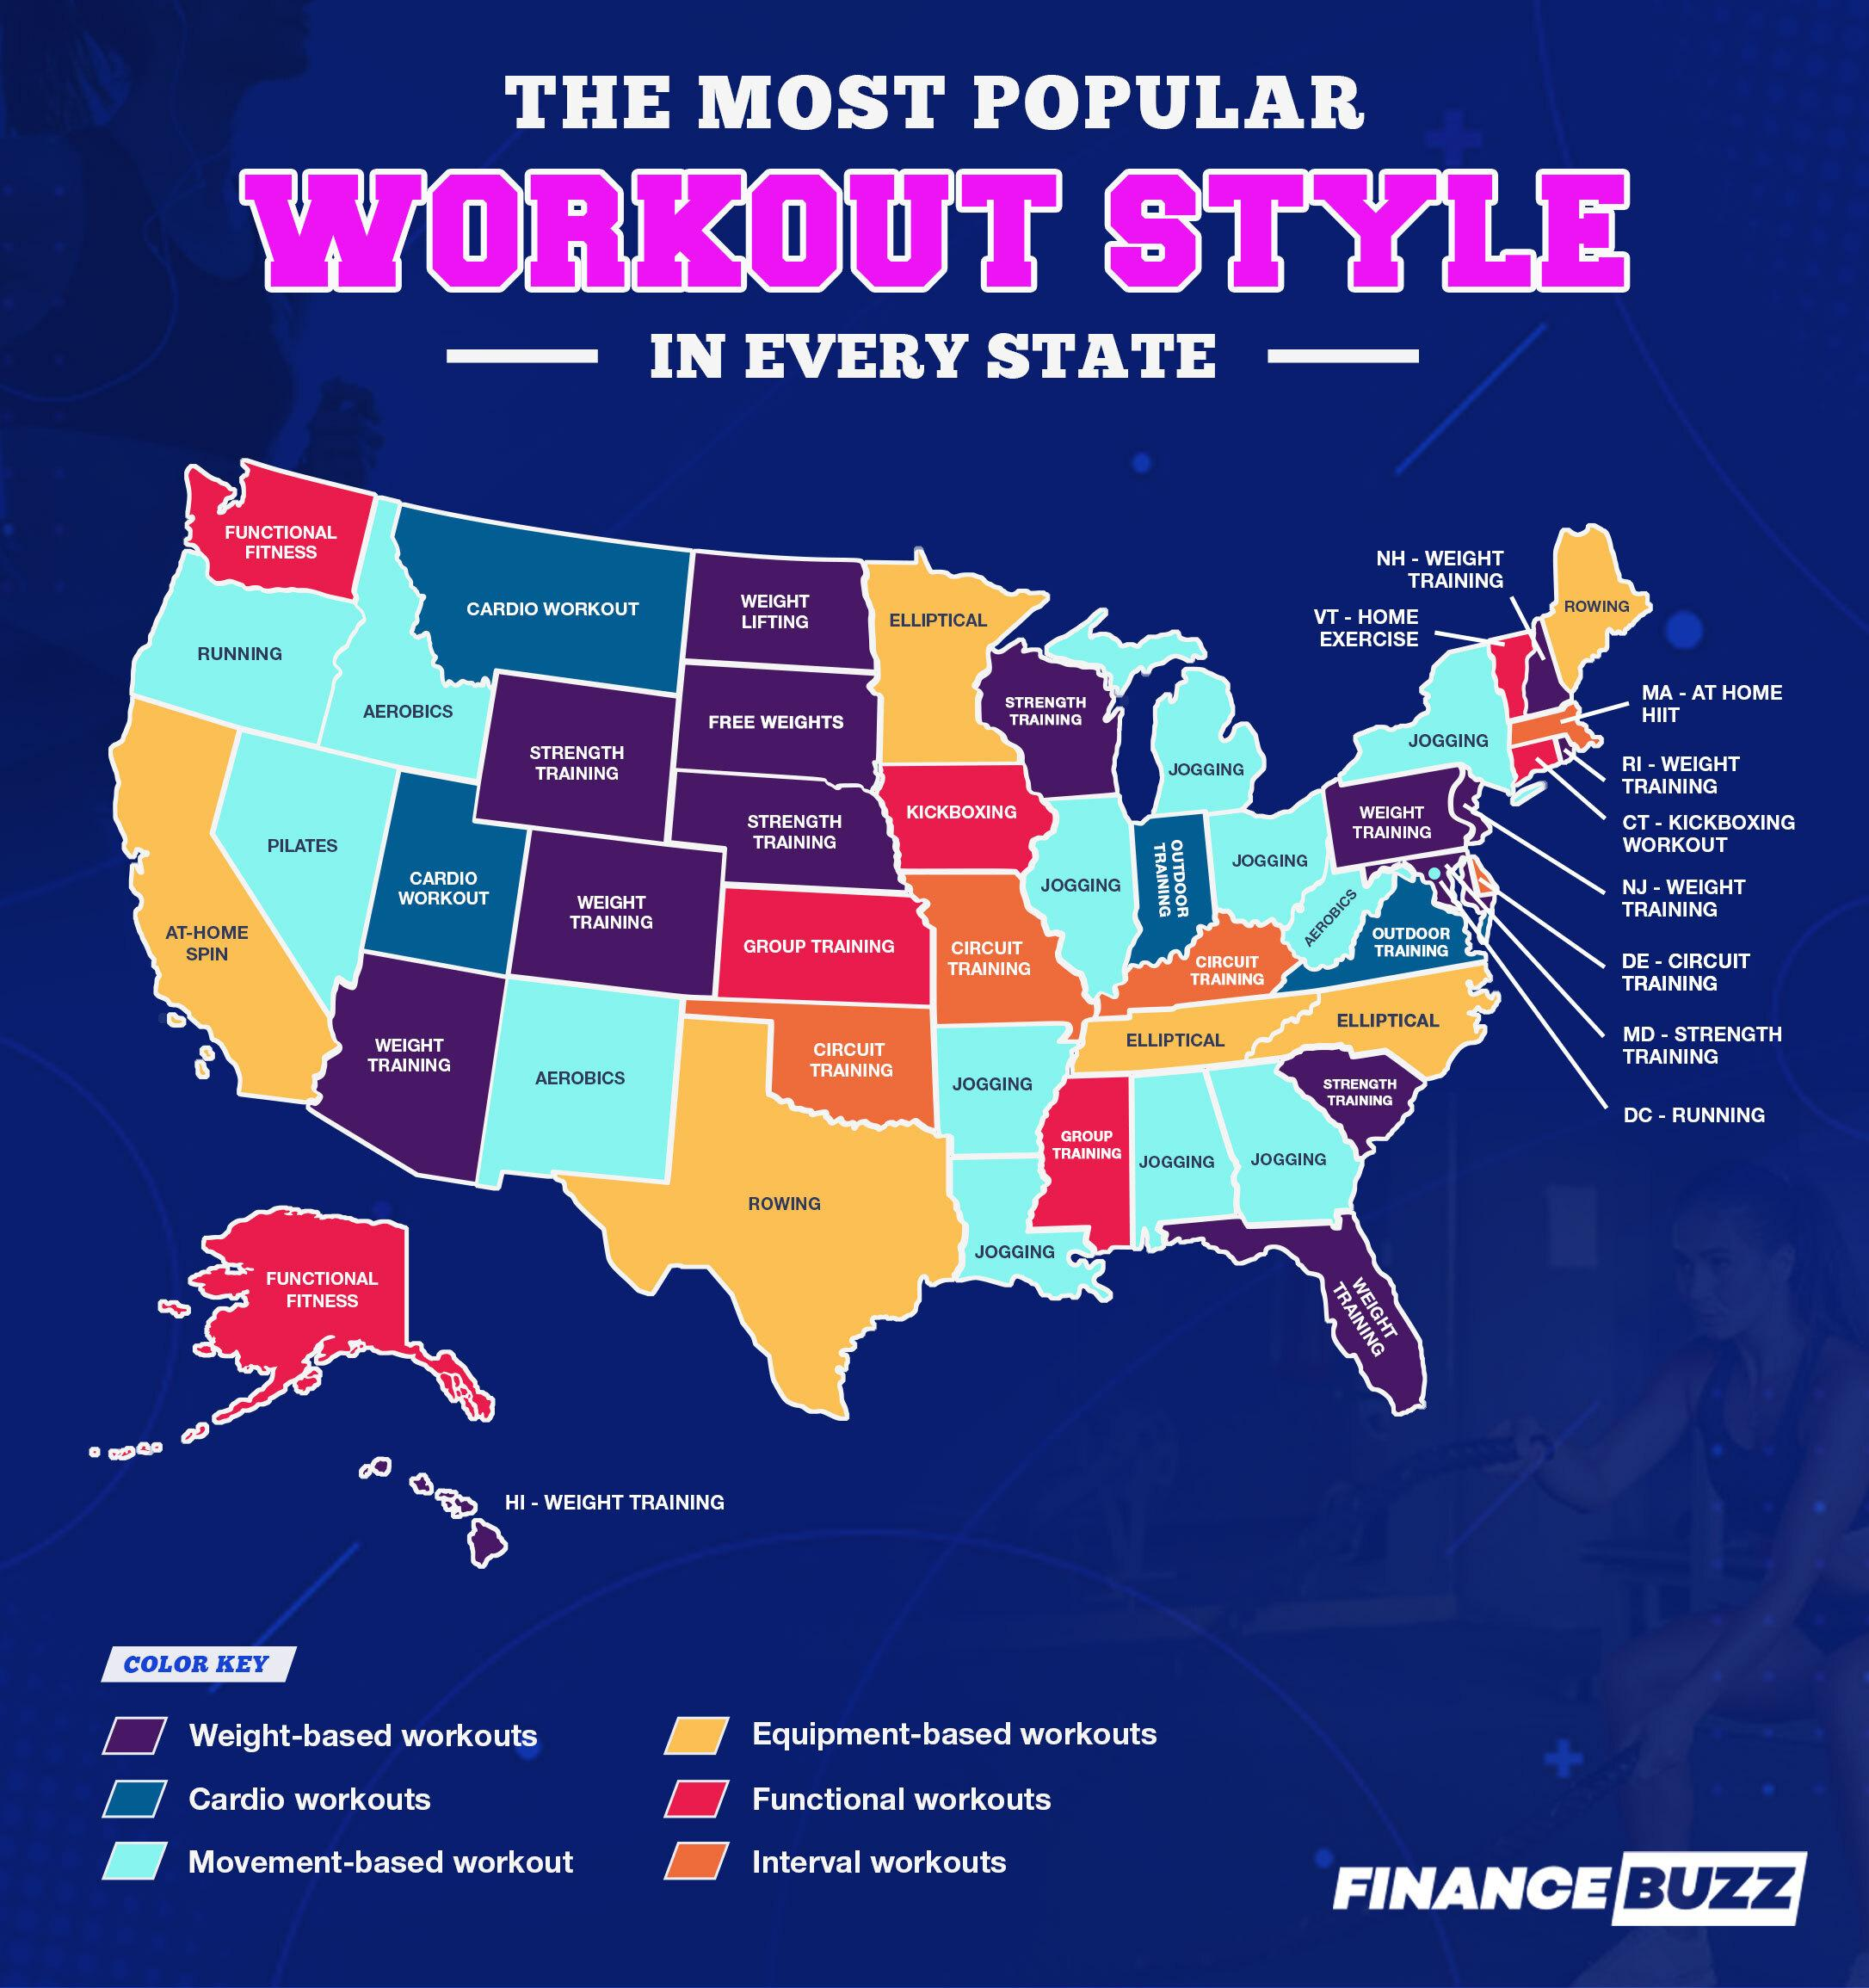 Map of the most popular workout style in every state